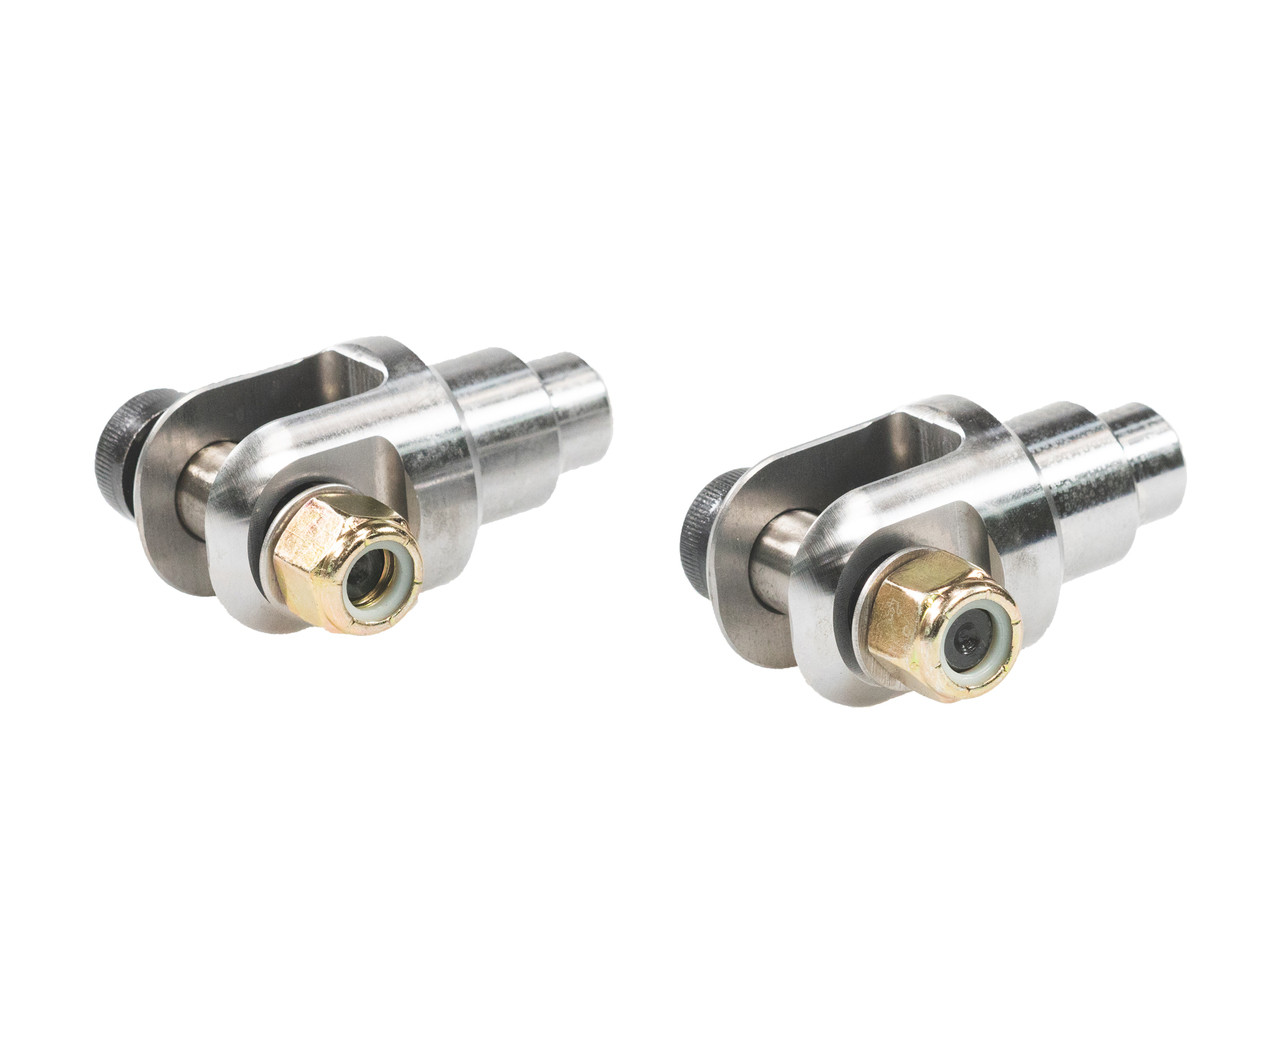 Clevis with 5/8 high tolerance attachment hardware